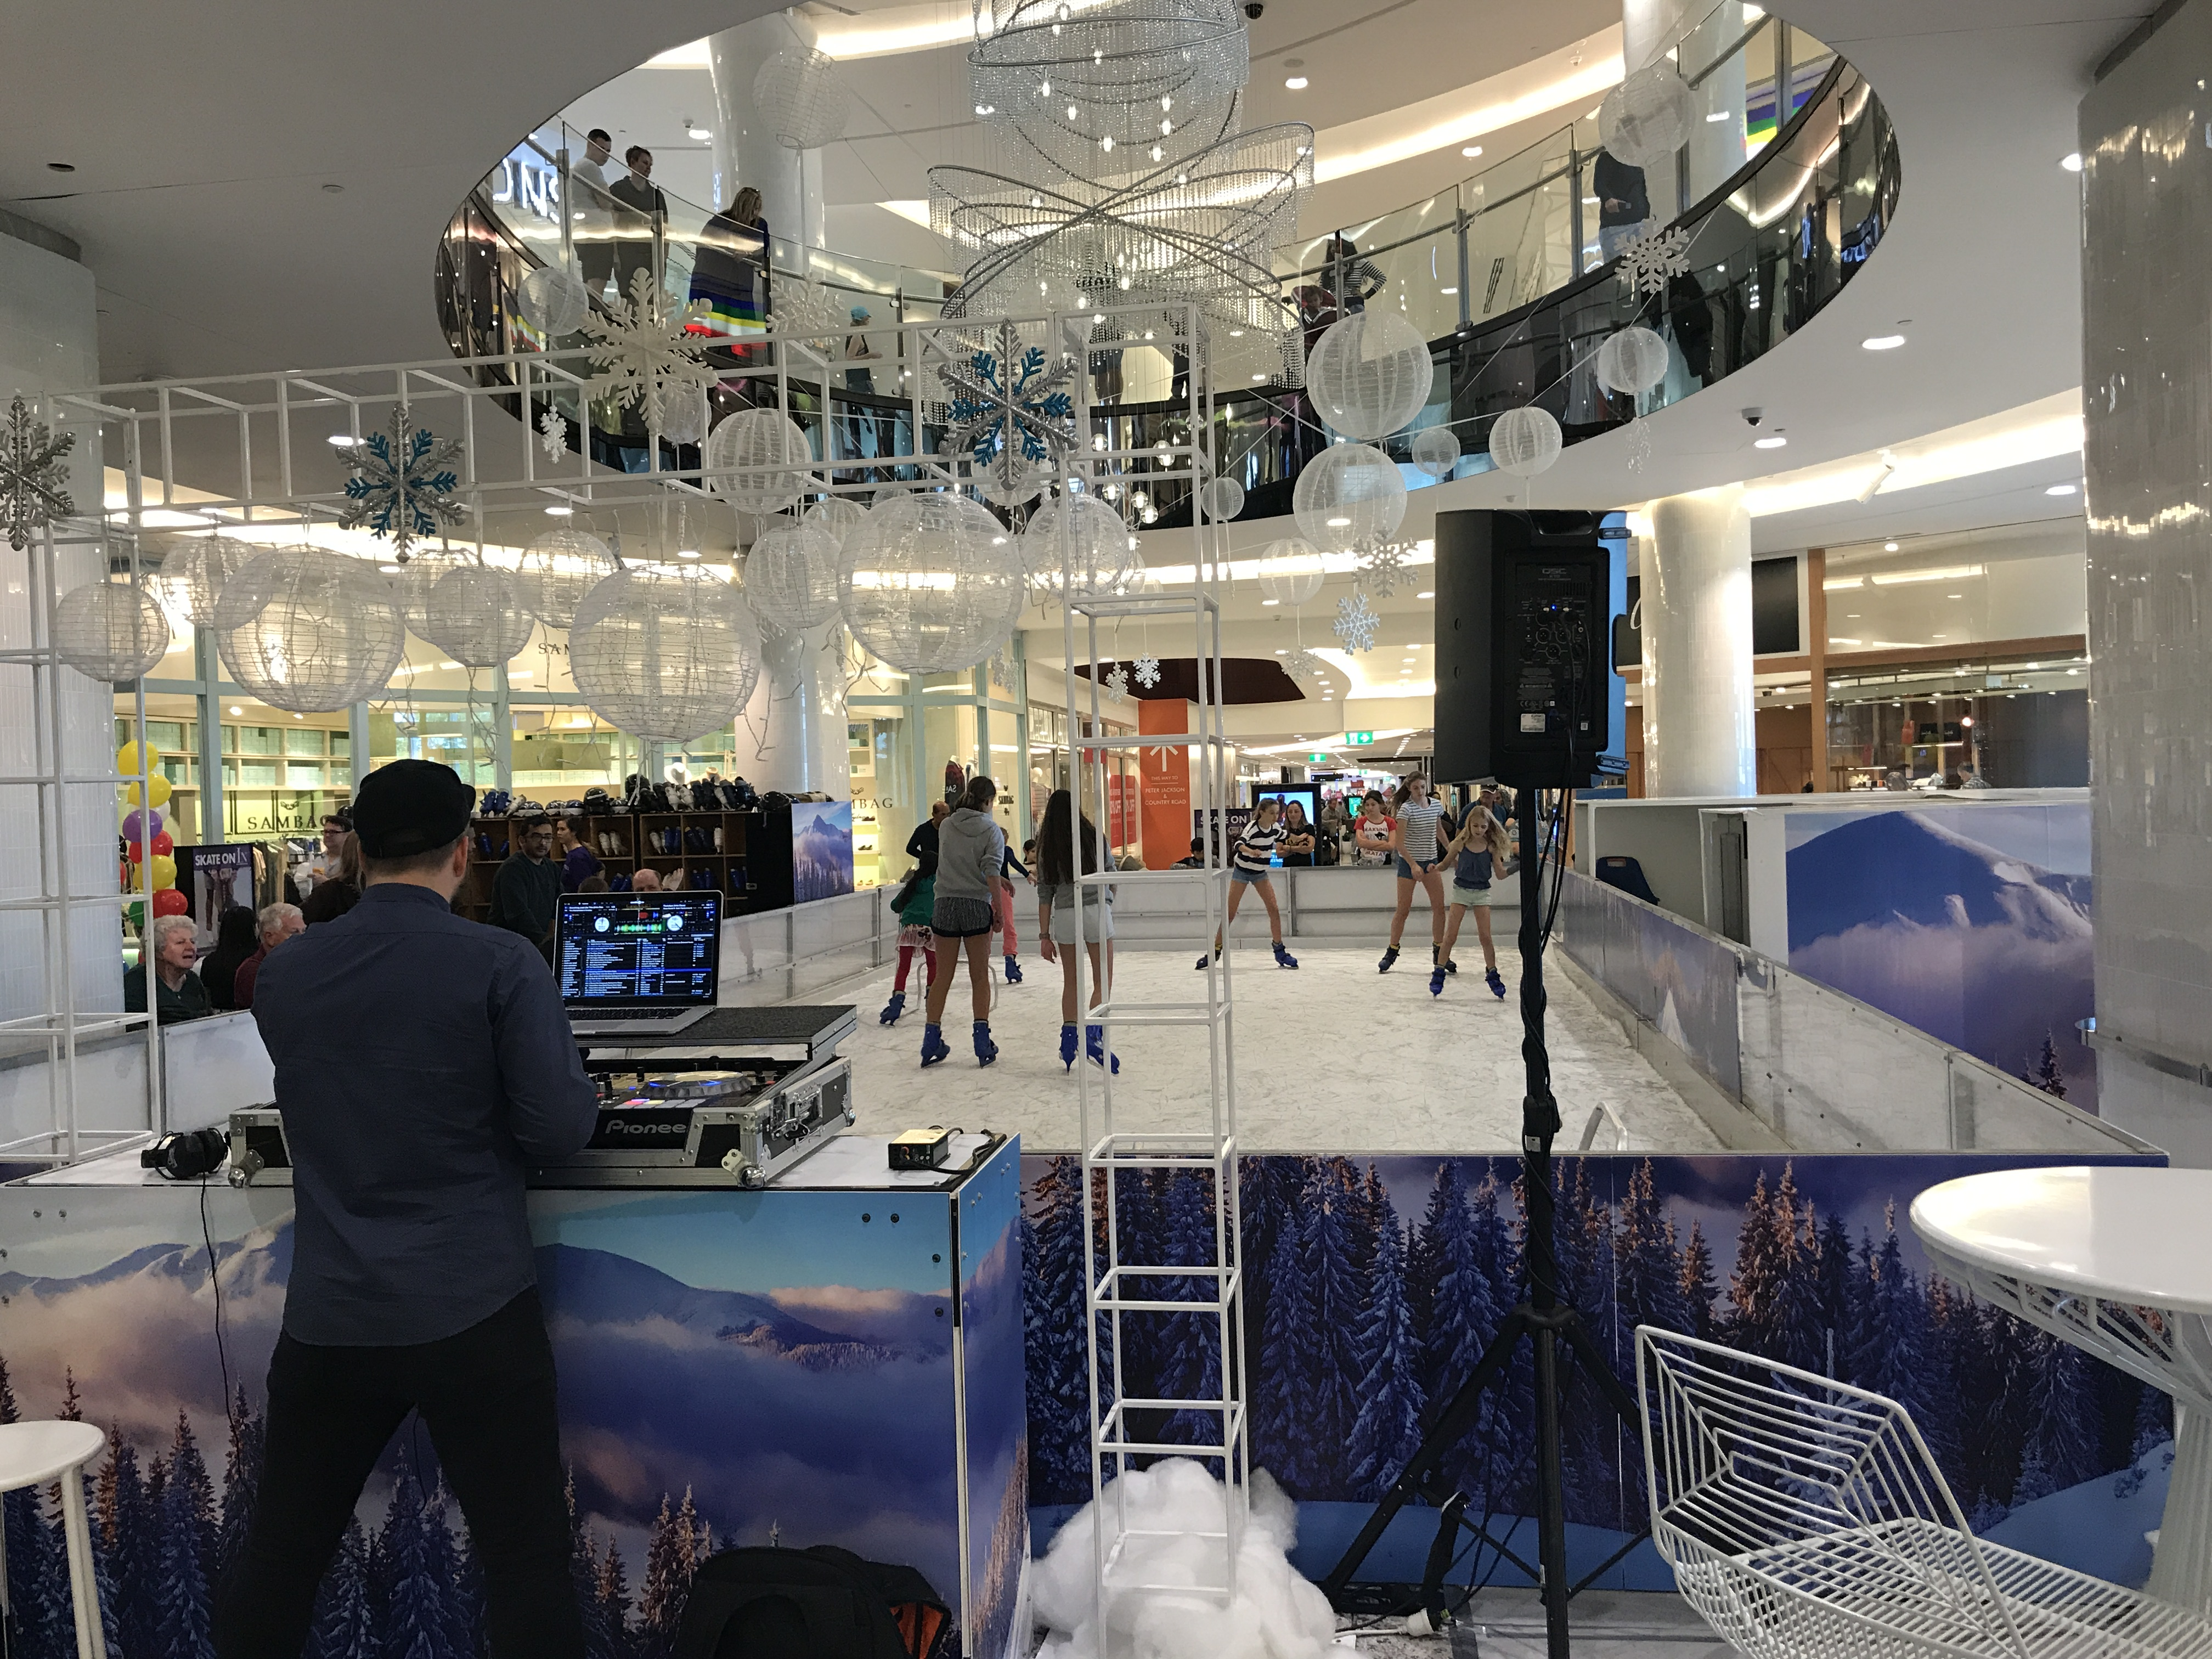 File:Ice skating at the Indooroopilly Shopping Centre